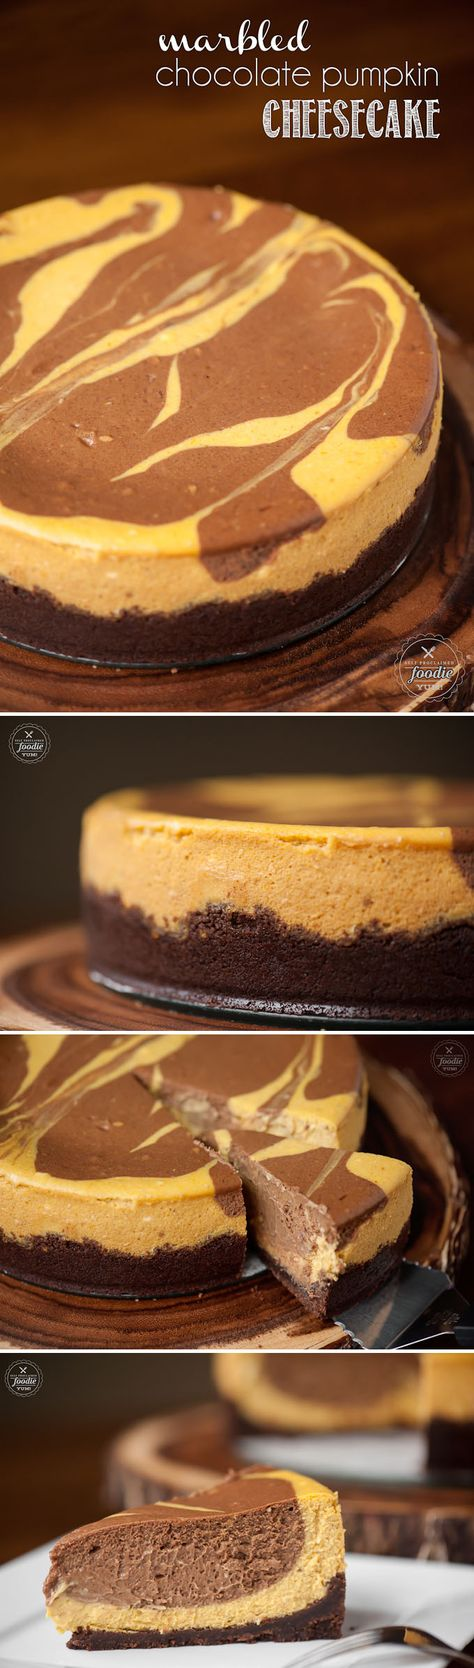 This homemade Marbled Chocolate Pumpkin Cheesecake made with a chocolate graham cracker crust and pumpkin puree is the perfect fall or Thanksgiving dessert!